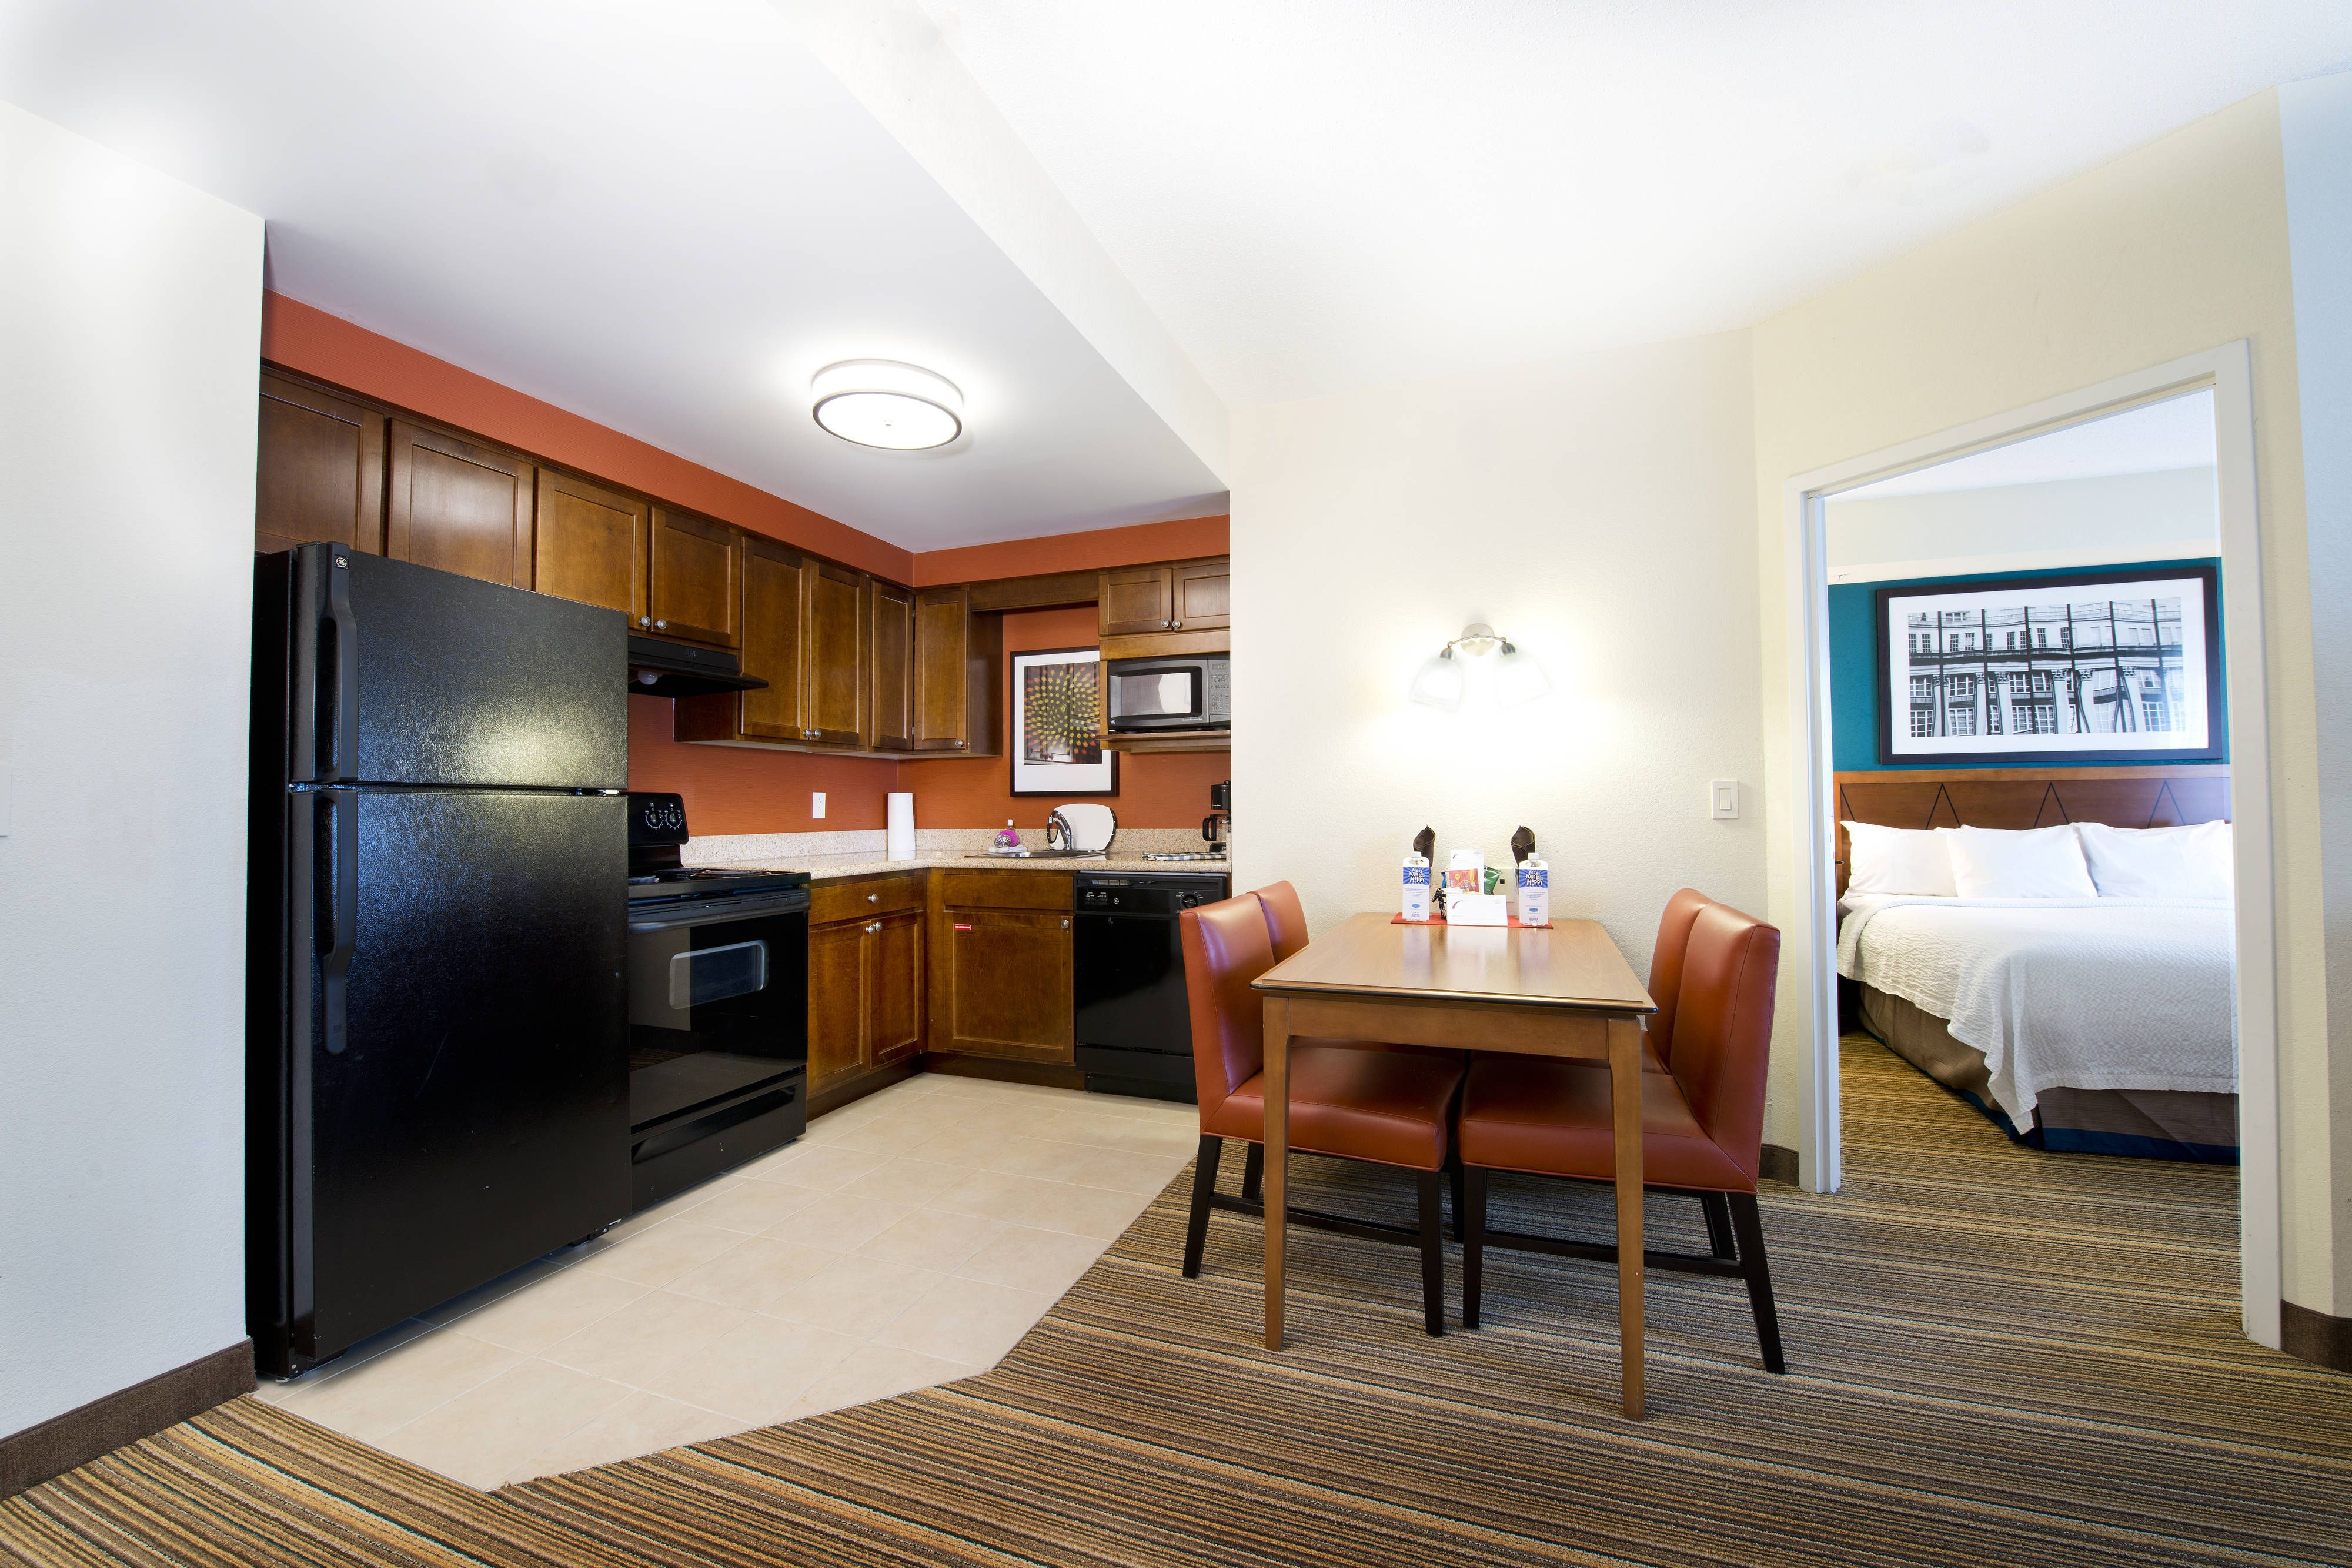 Residence Inn Mississauga Airport Corporate Centre West Two Bedroom Suite Kitchen Area Hotels Holidays Visiting Two Bedroom Suites Home Decor Residences